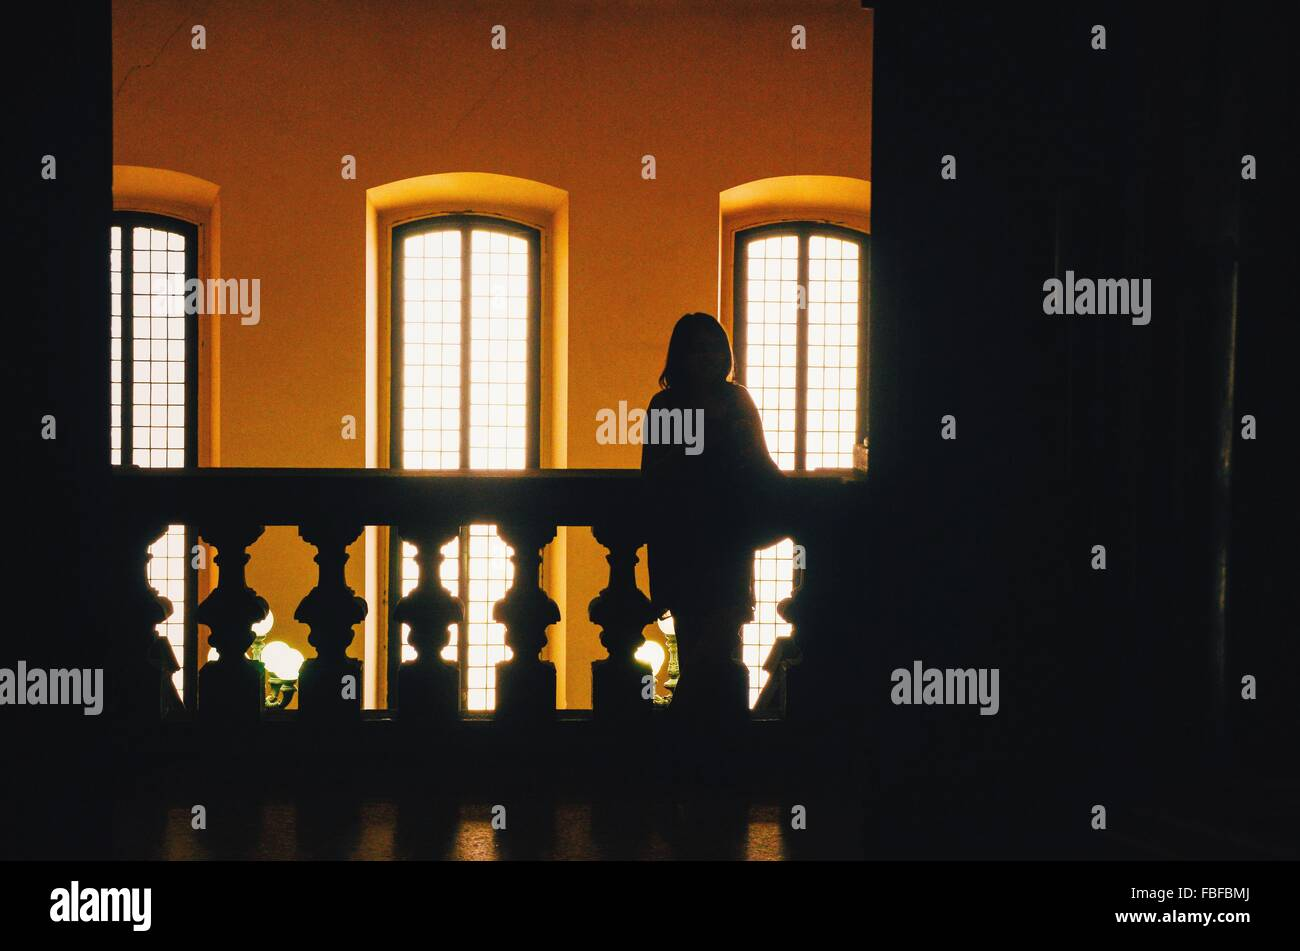 Silhouette Personne debout contre Windows Photo Stock